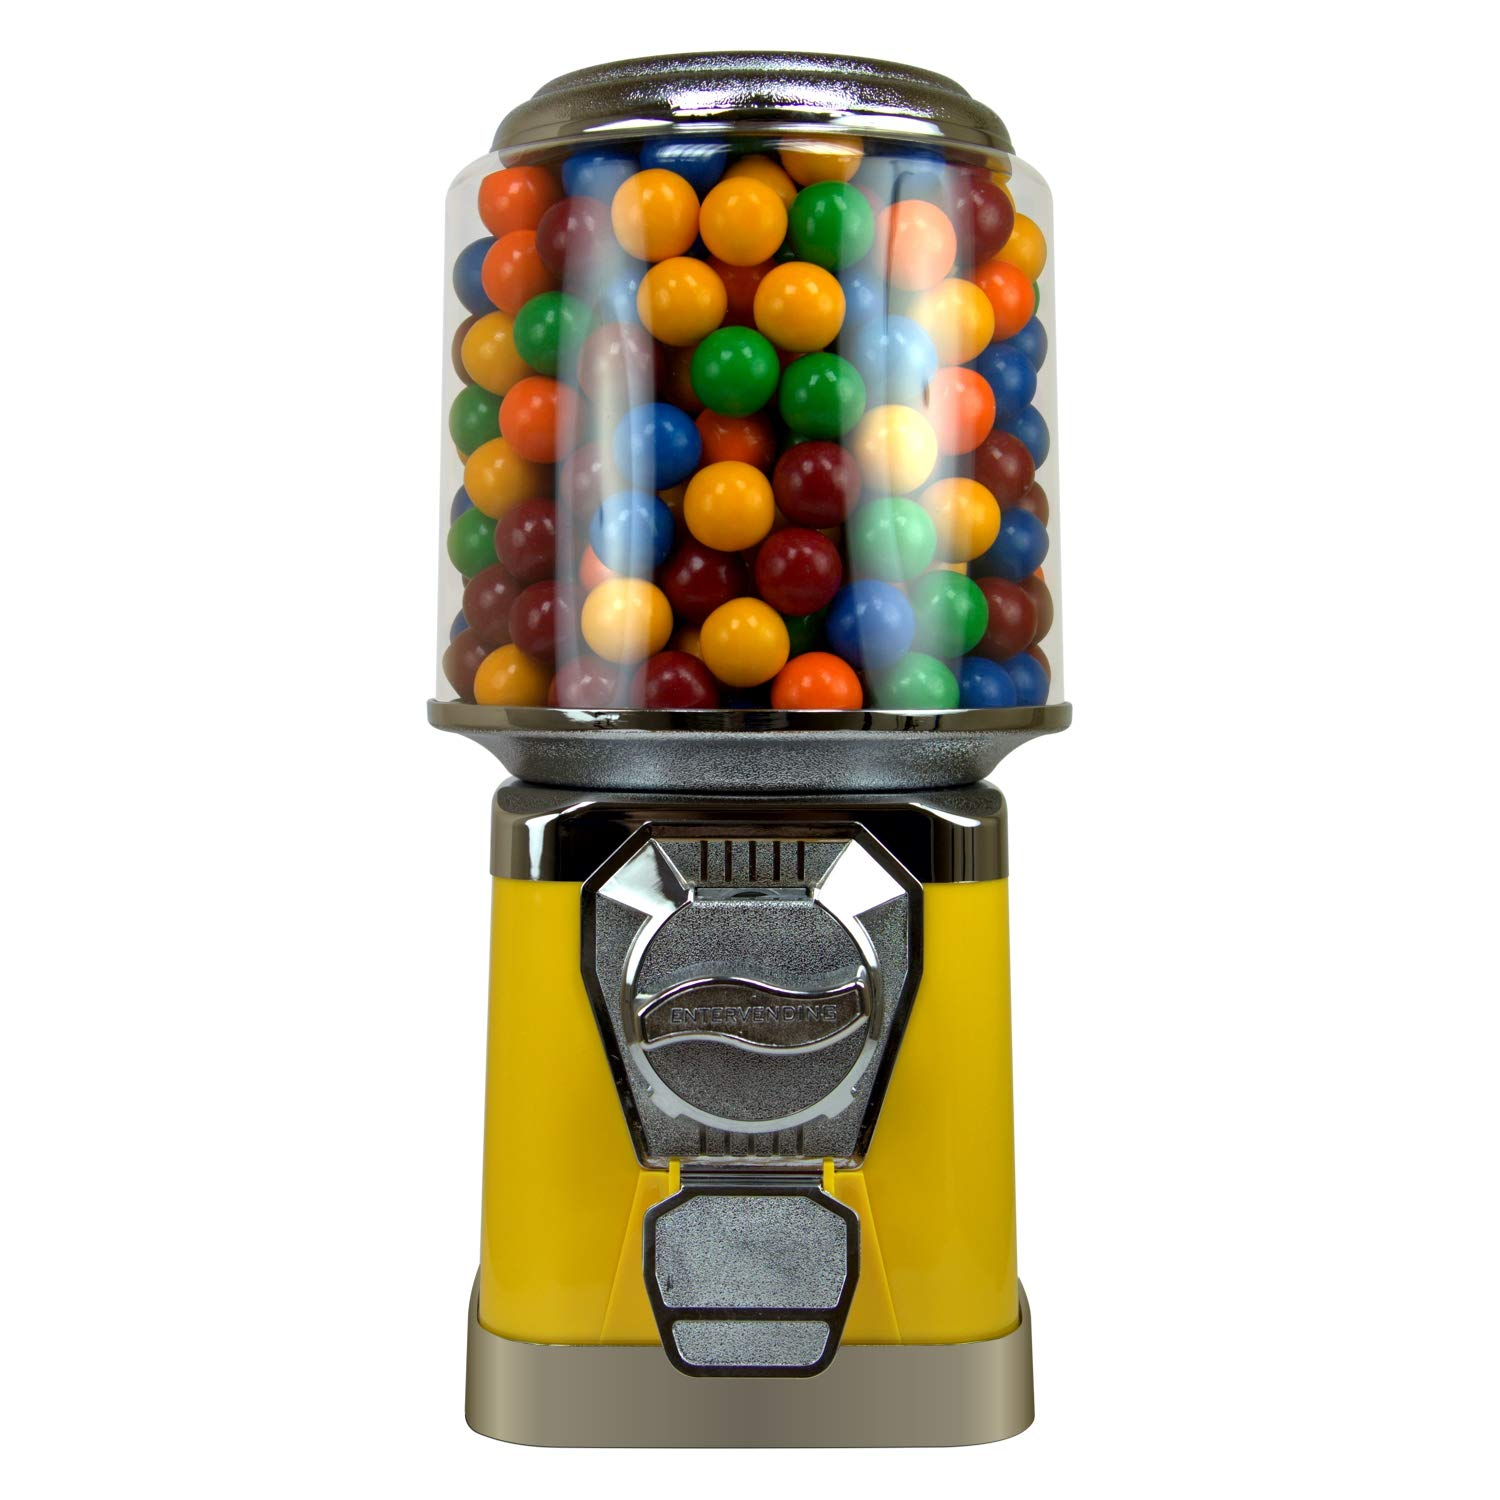 Gumball Machine for Kids - Yellow Vending with Jacksonville Gorgeous Mall Cylinder